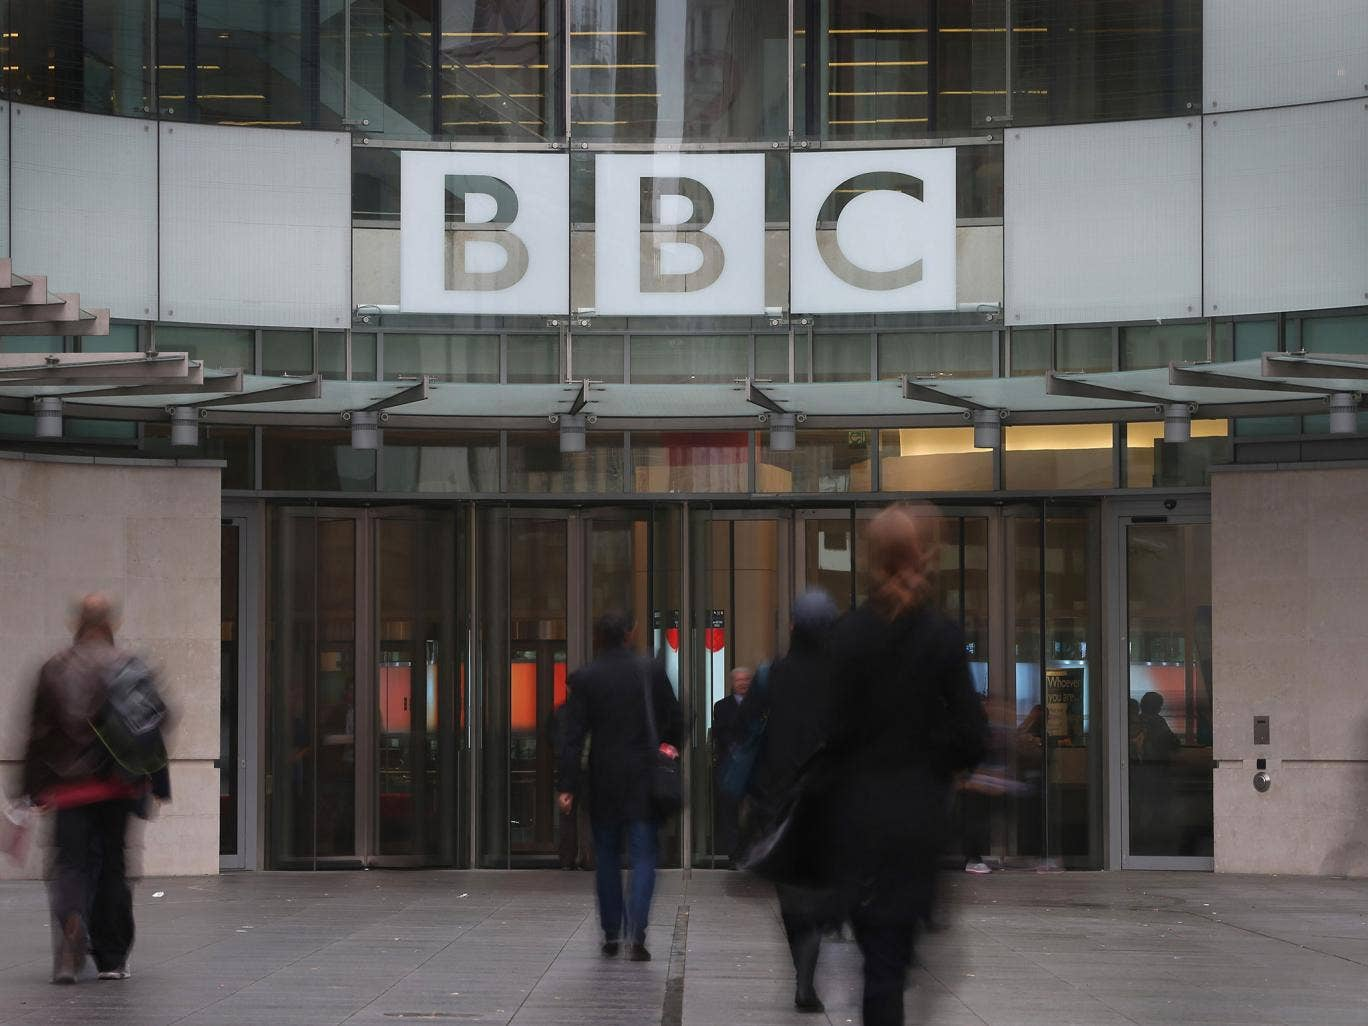 The BBC licence fee was frozen in 2010